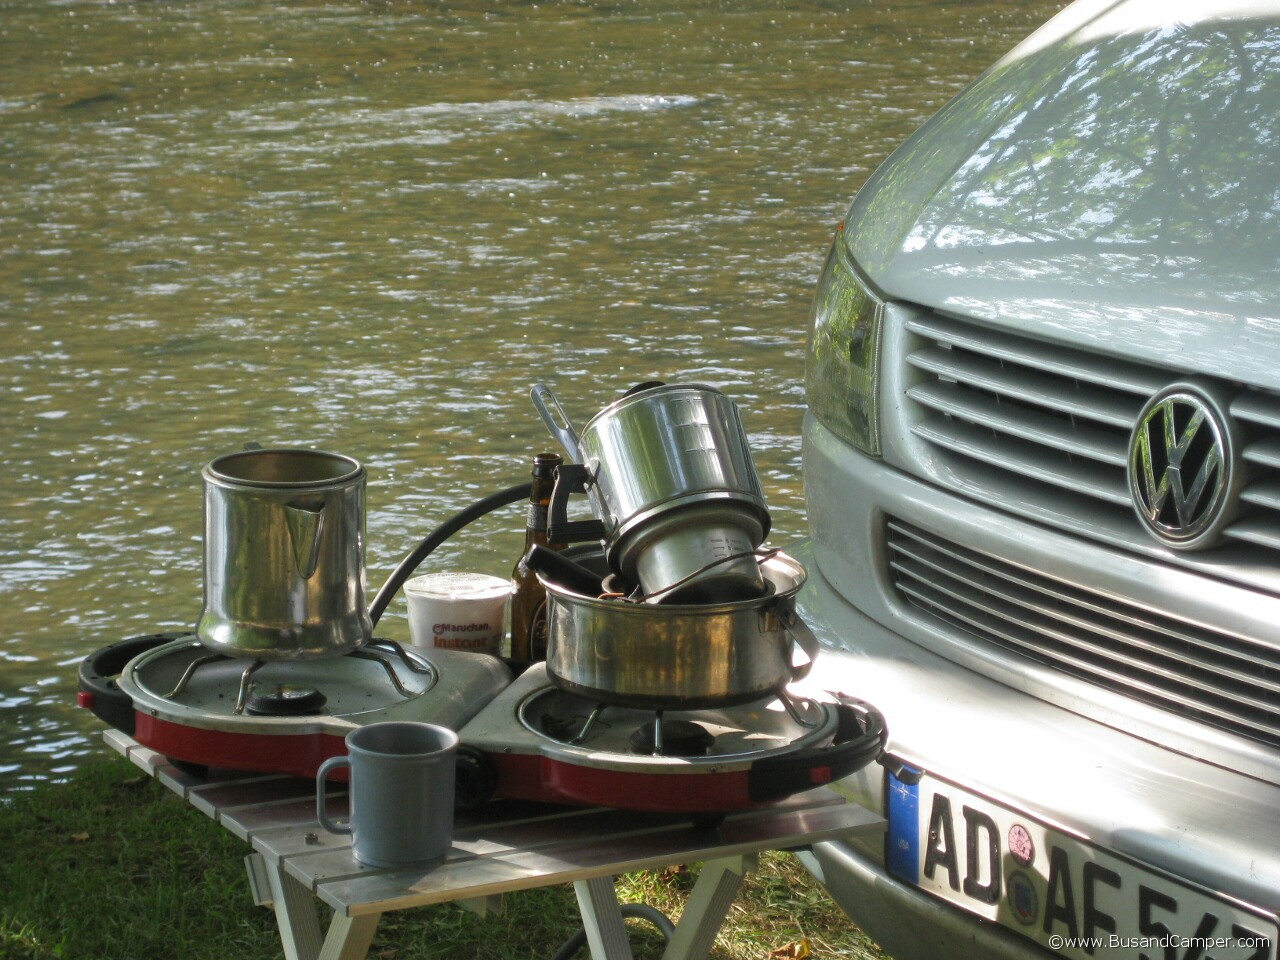 Coleman grill and camping pots